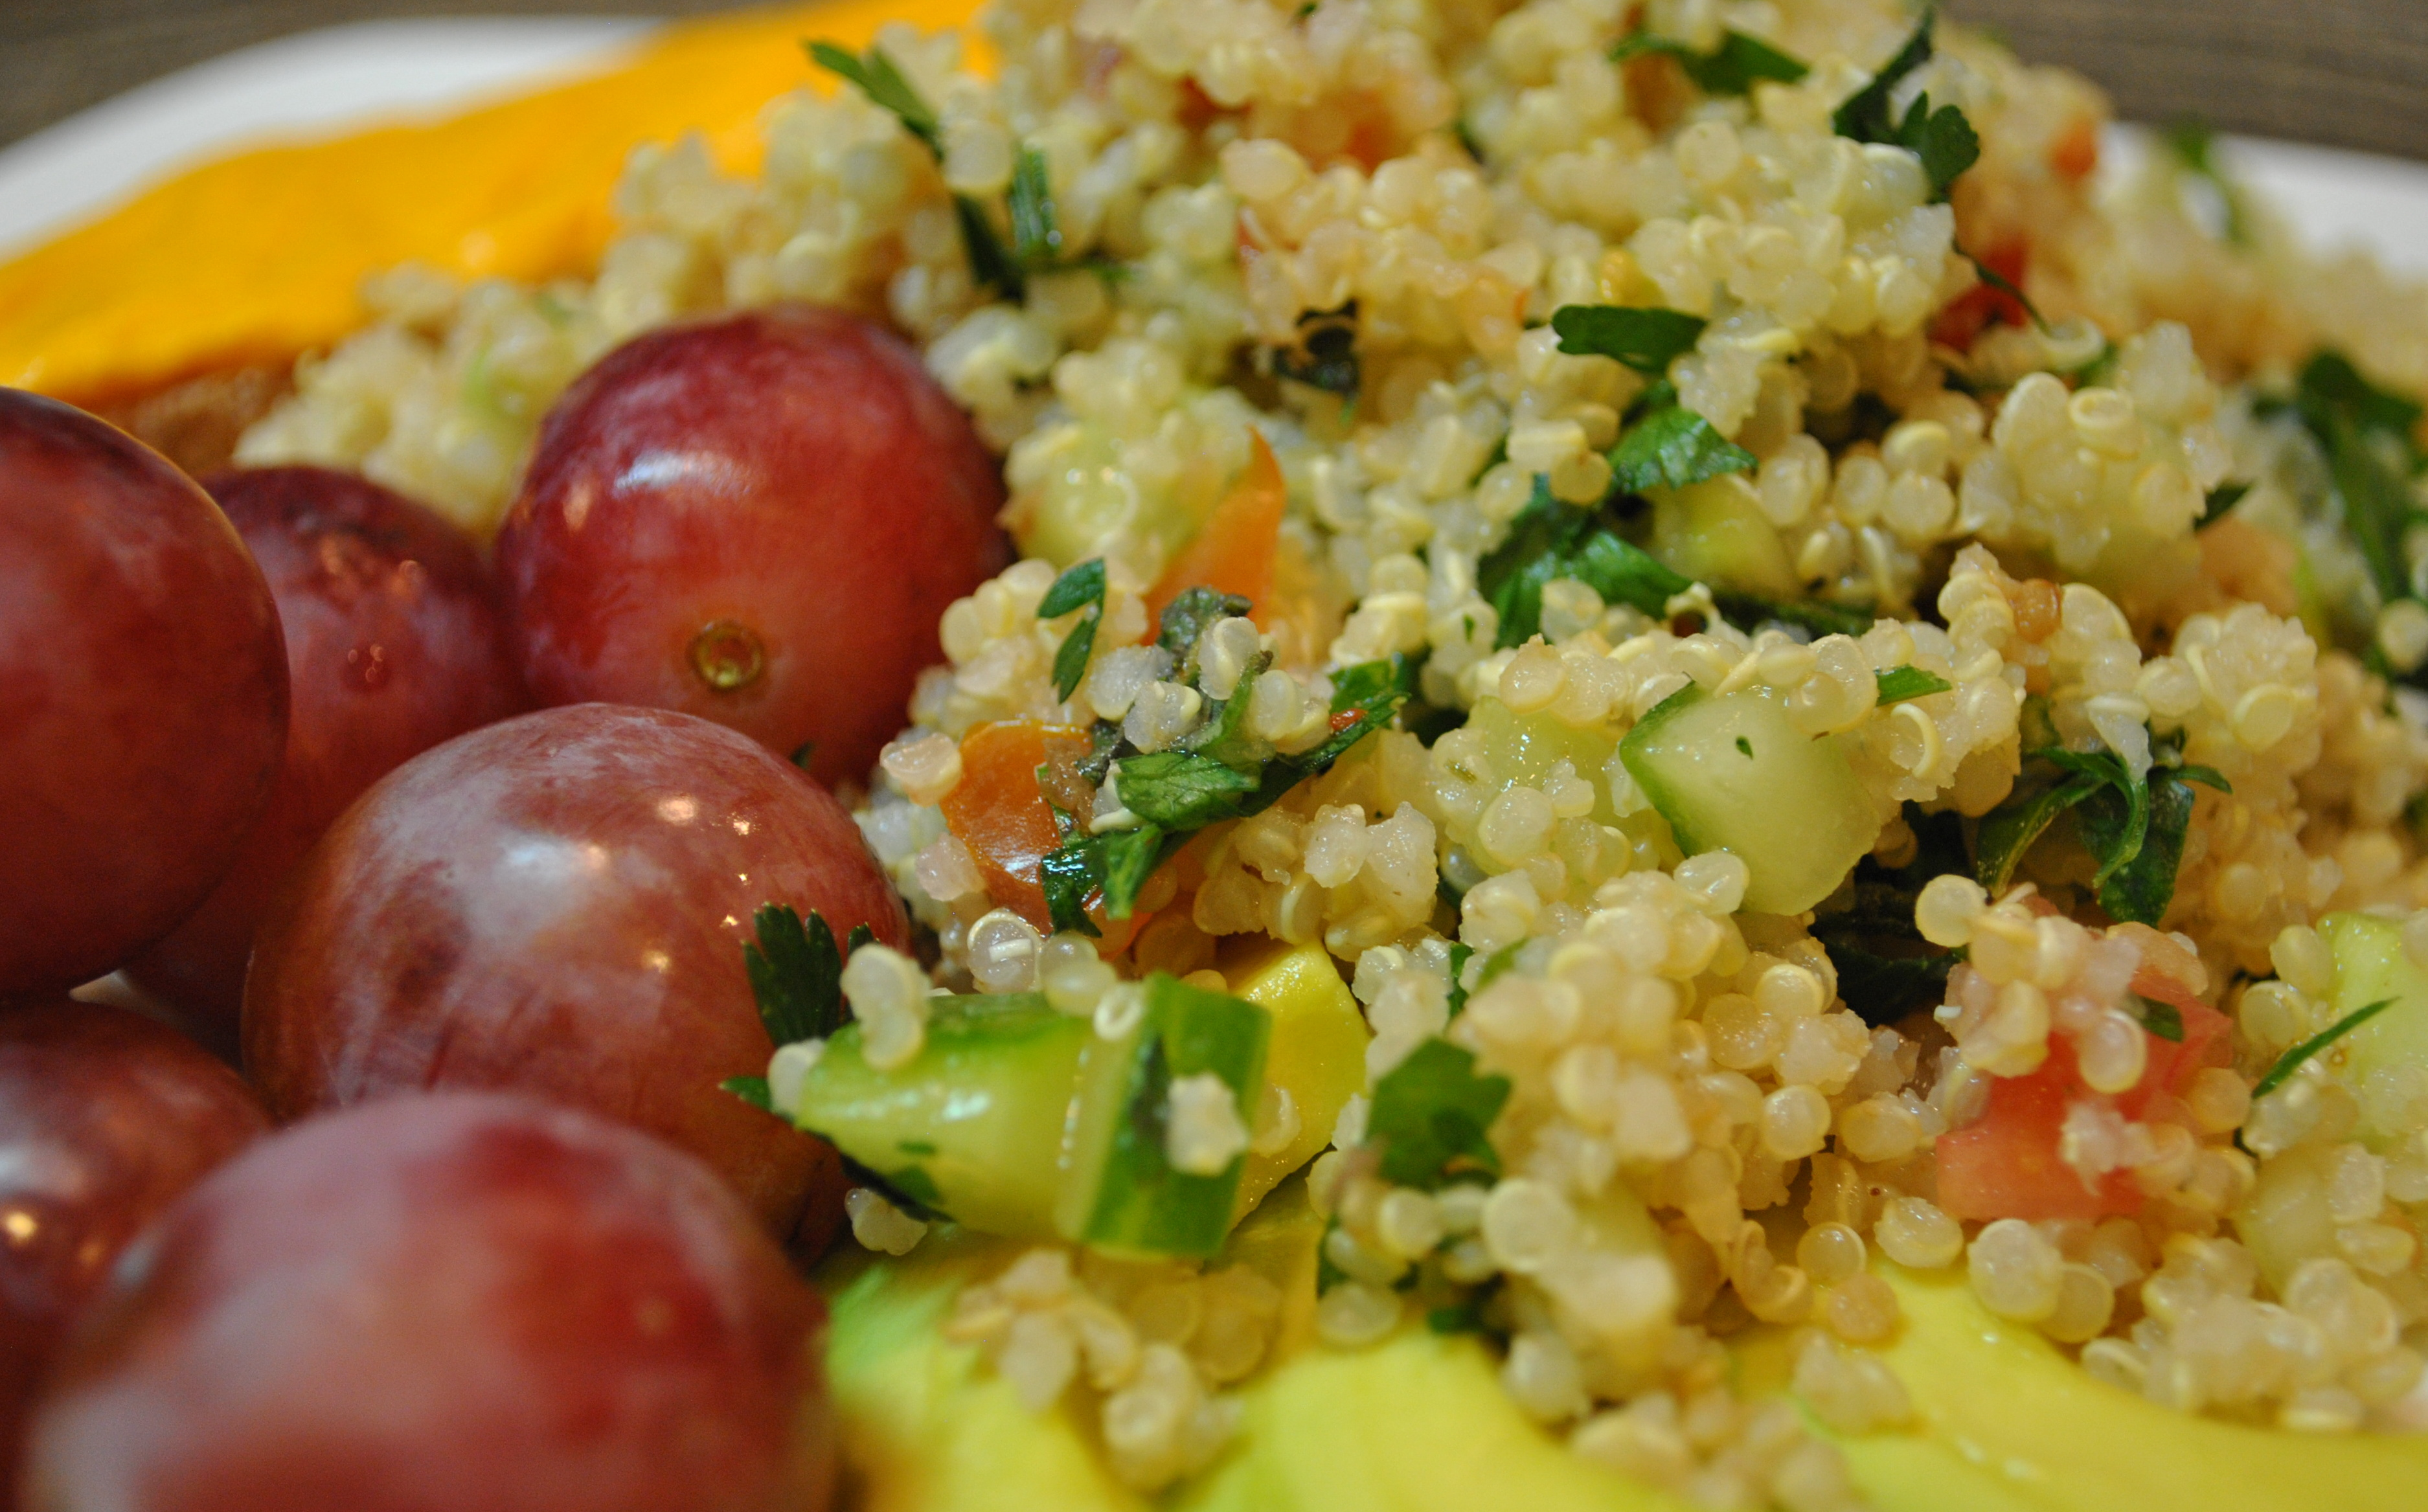 Simplest Quinoa Tabbouleh Salad | Vedged Out